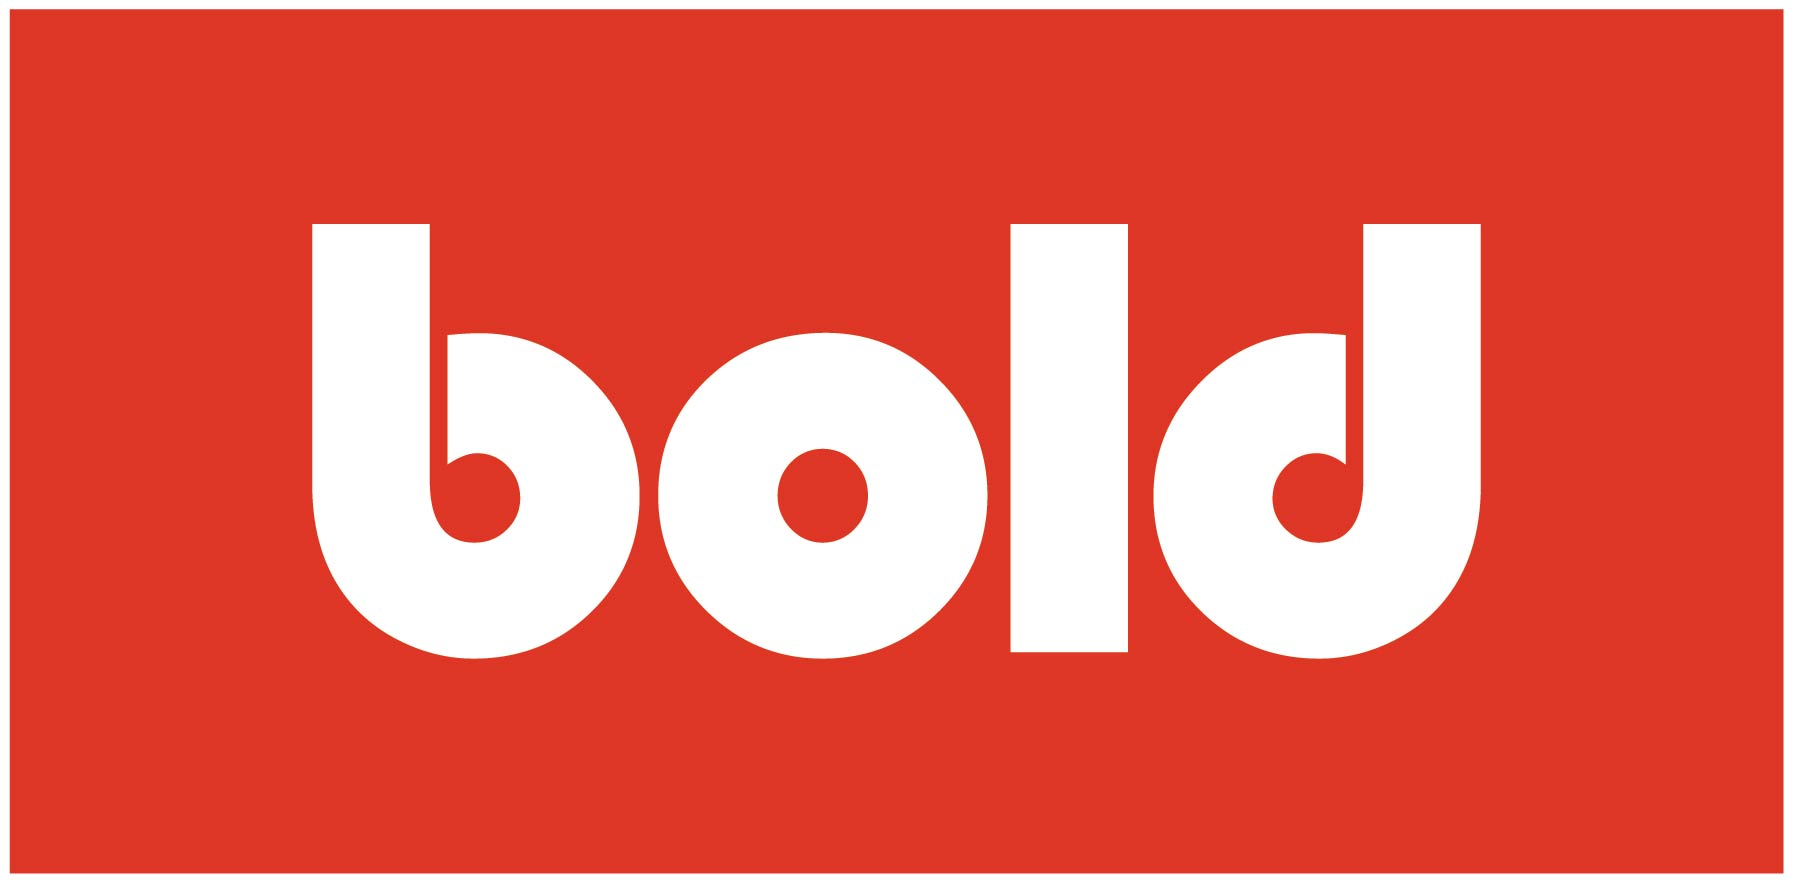 Inside red box with white outline is the word Bold in thick white block lettering for Bold logo